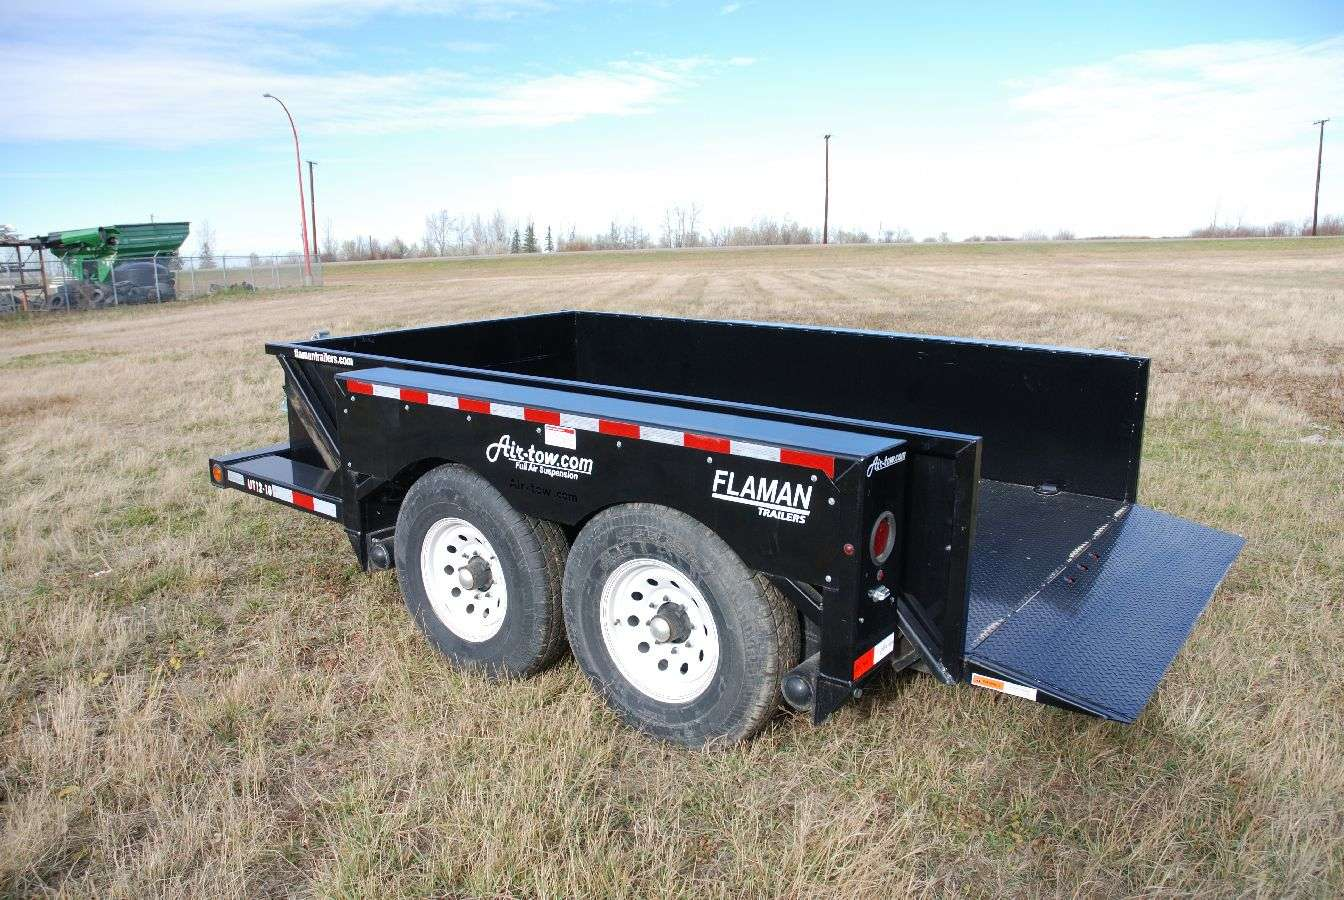 Air-tow Flatbed Level Loader